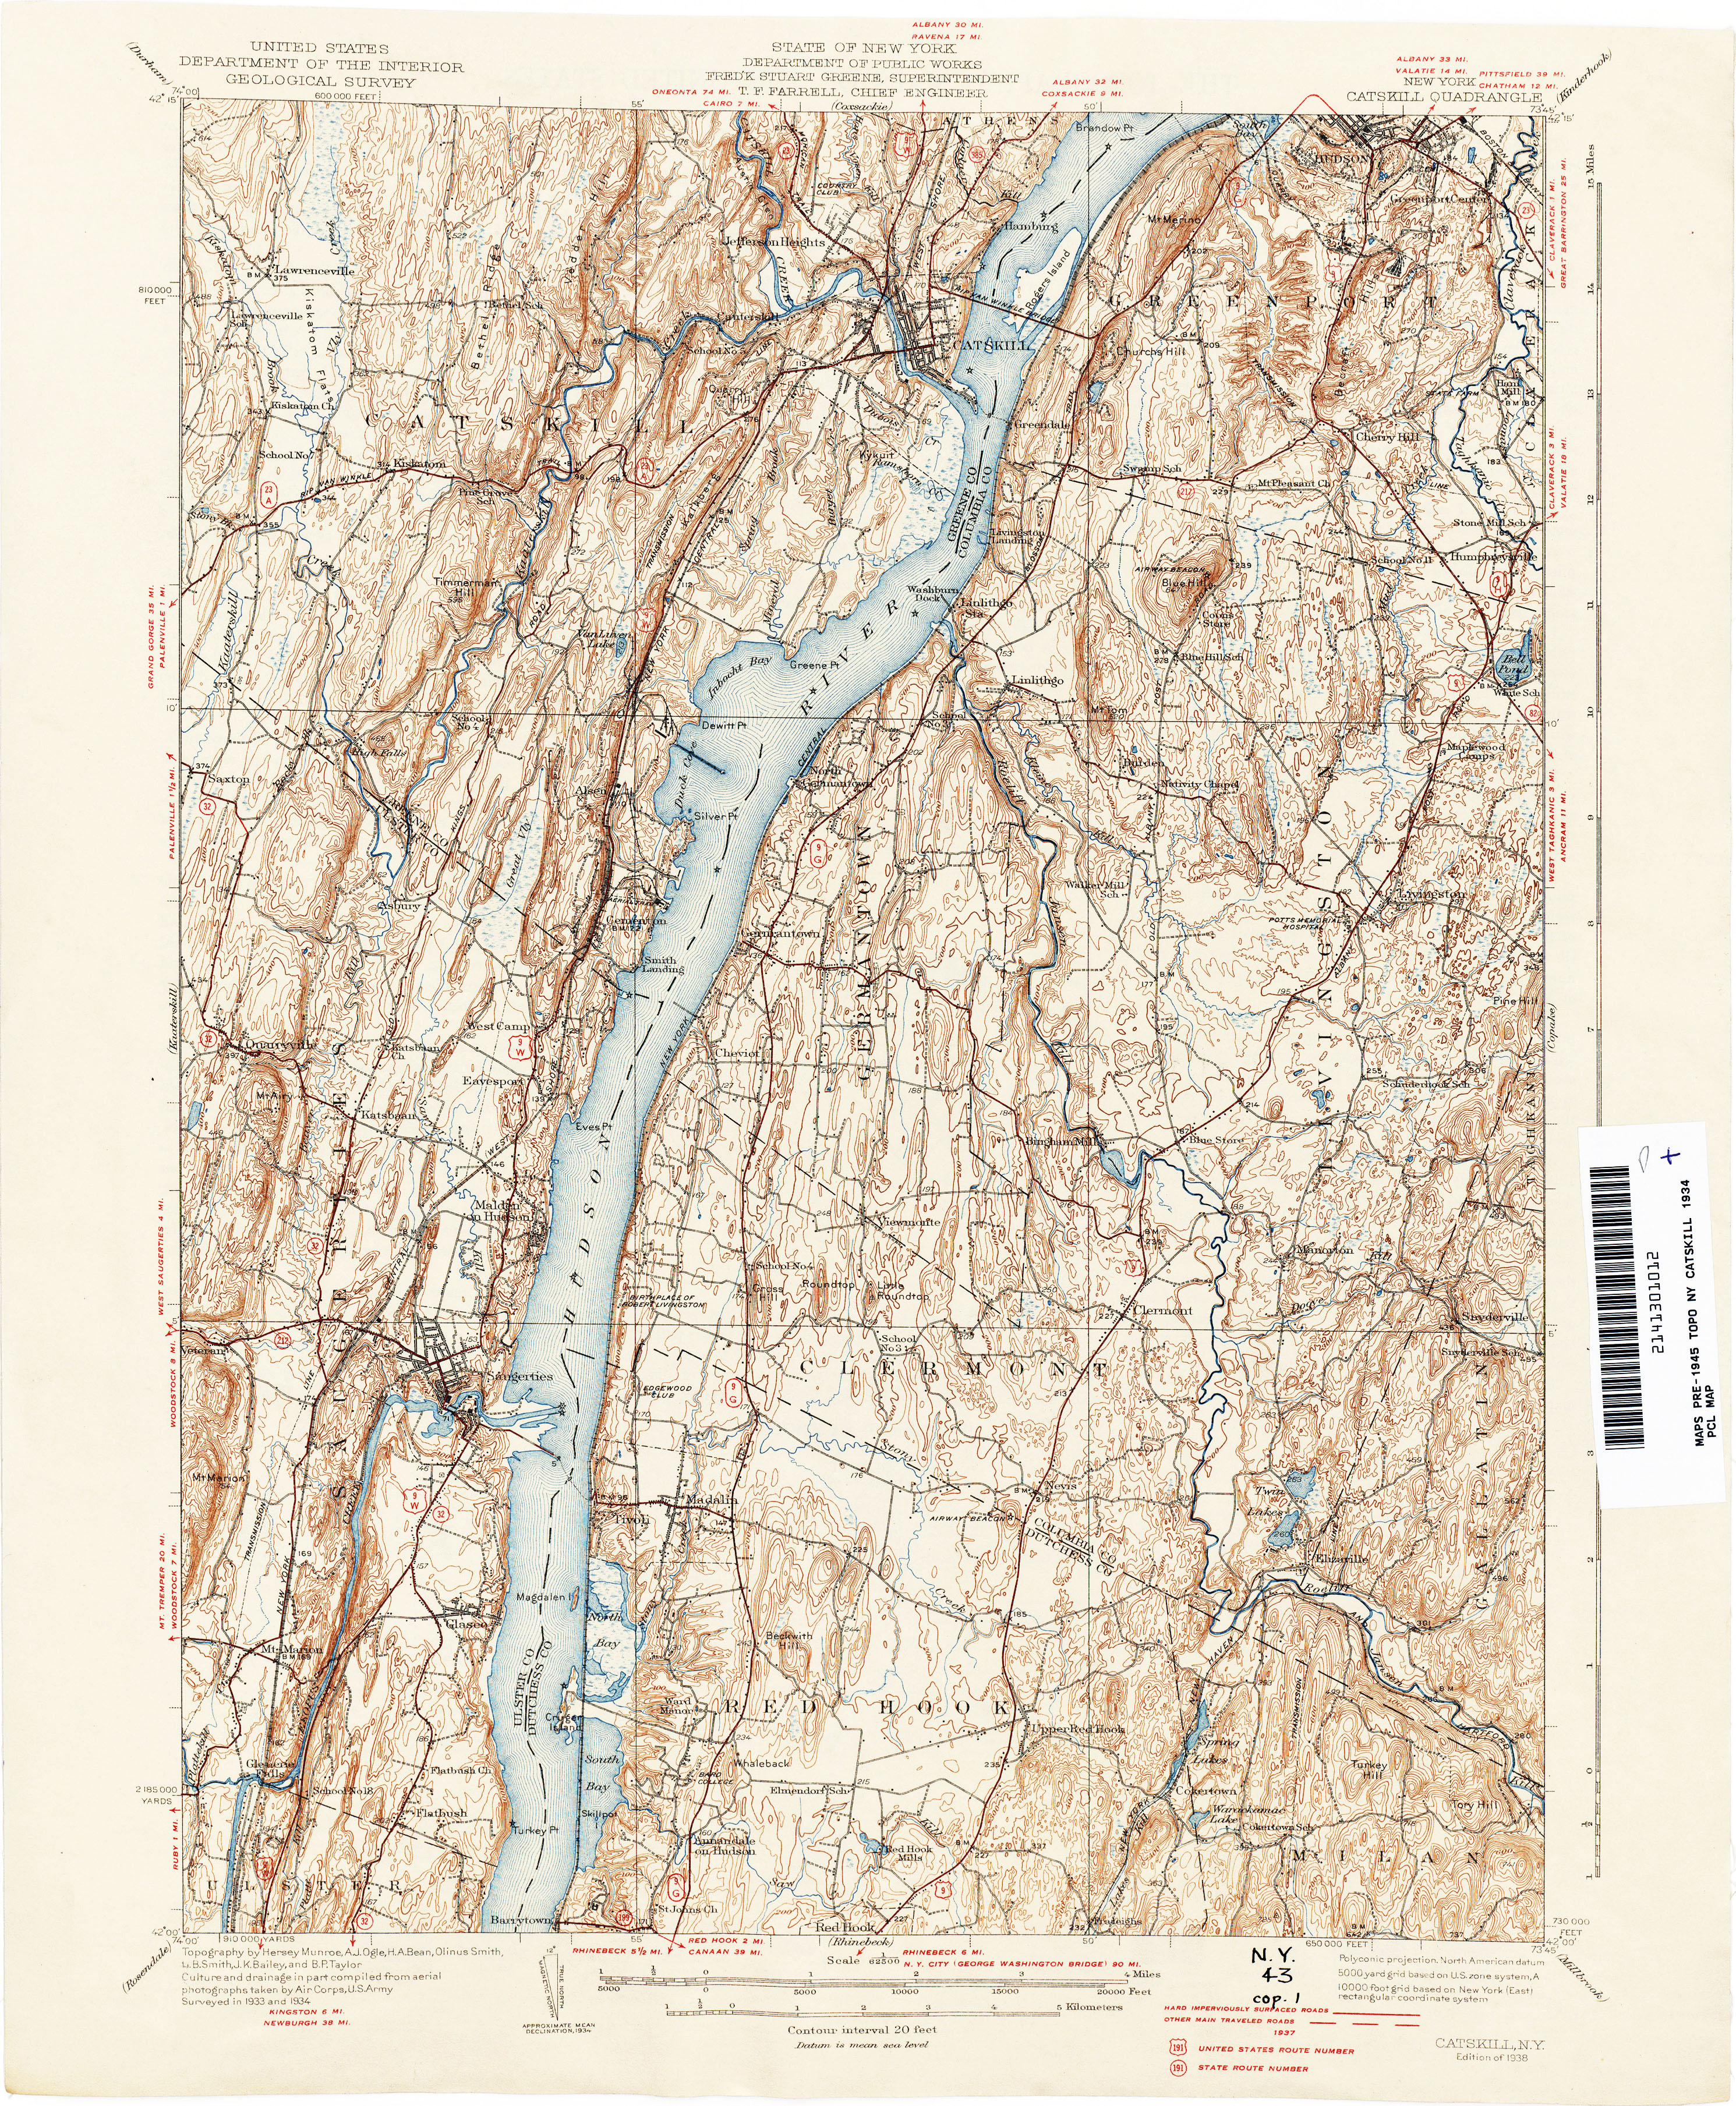 Us Highways Map Midwest - 1934 us highways map